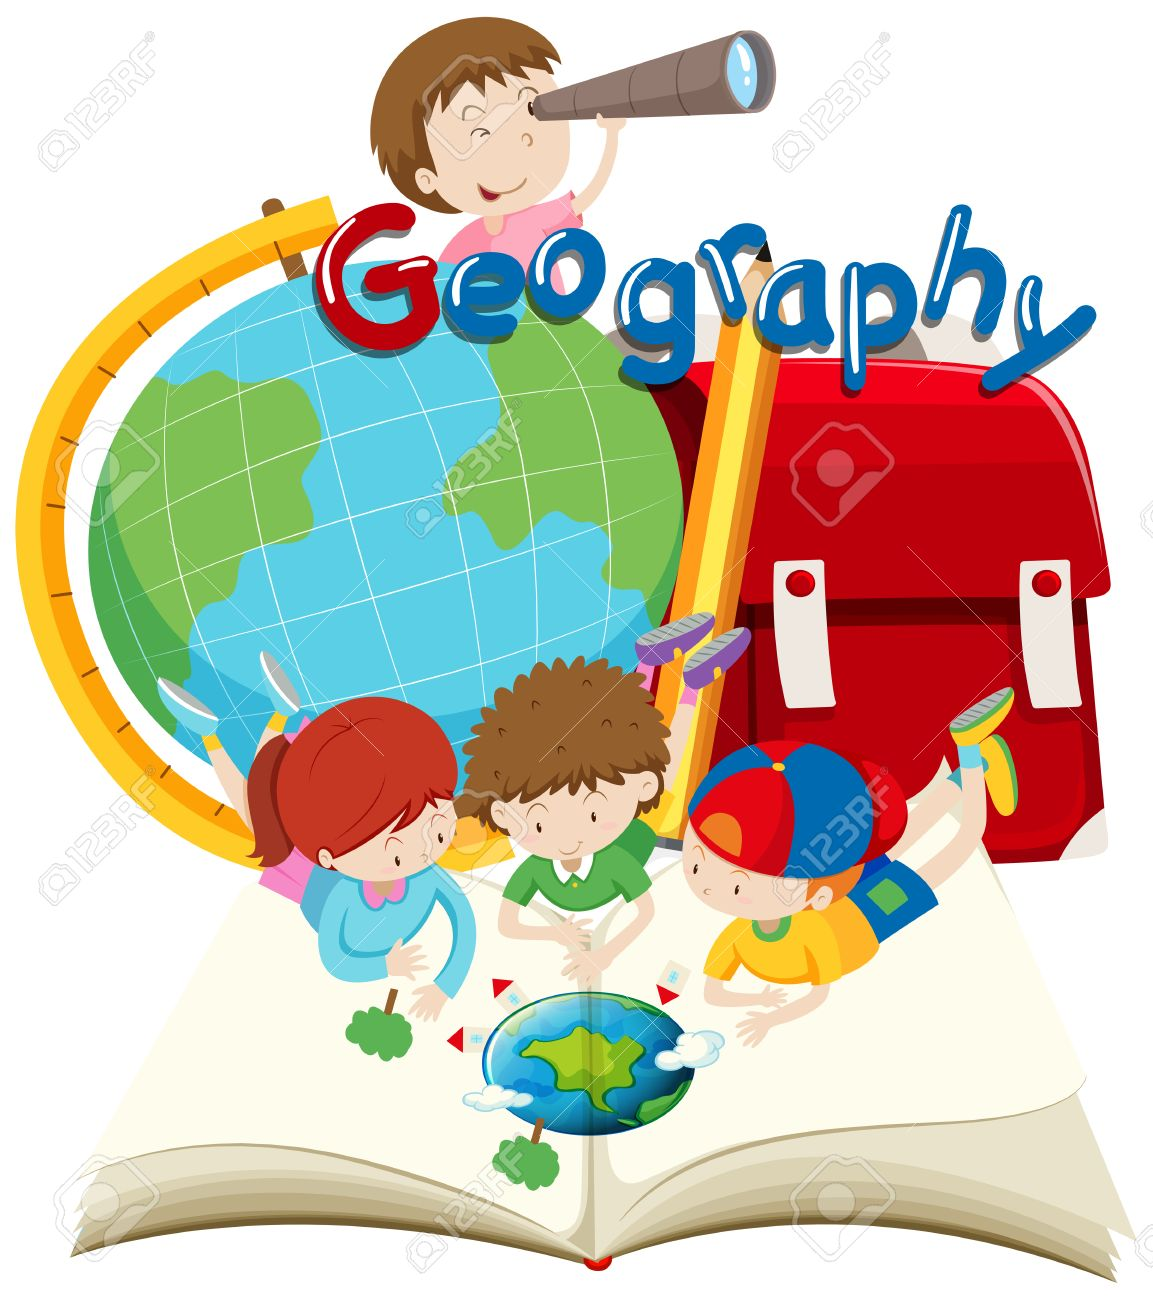 students and geography subject illustration royalty free cliparts rh 123rf com geography clips geography clips ks2